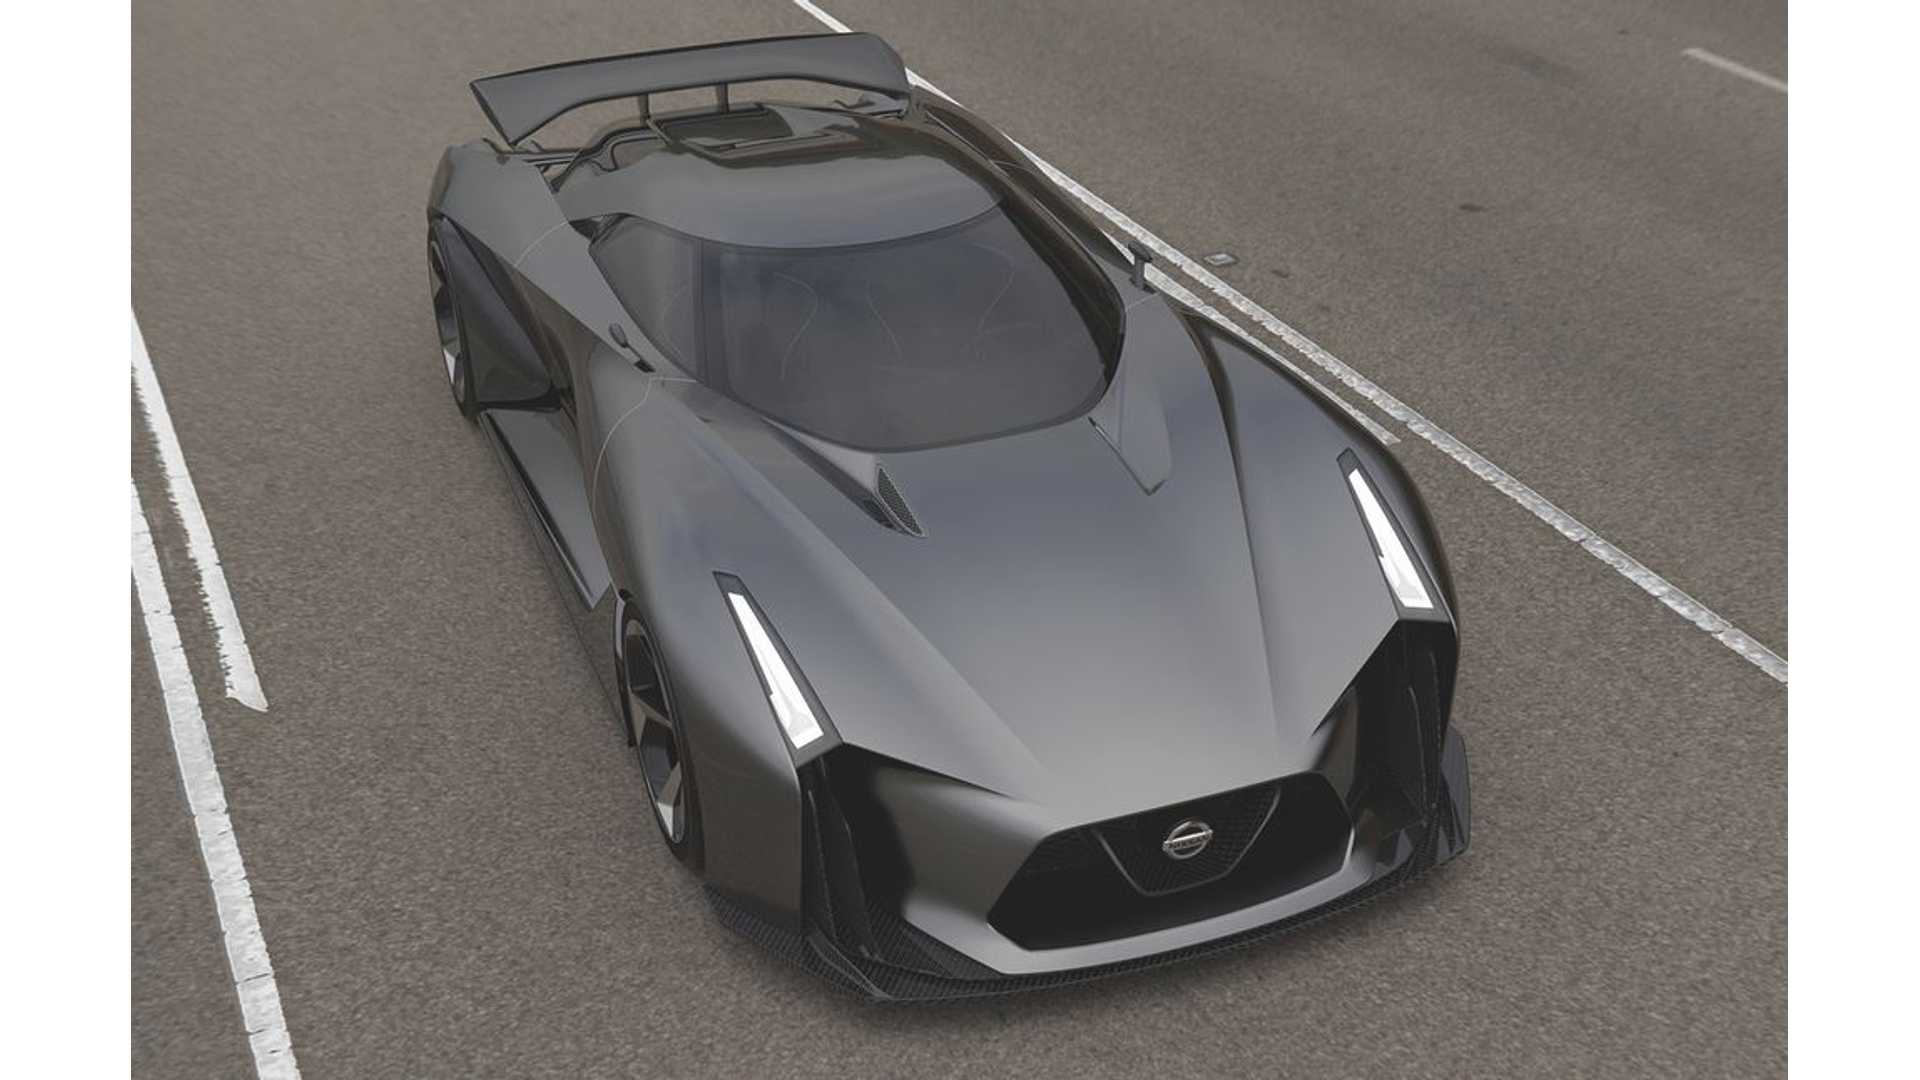 Nissan Reveals Concept 2020 Vision Gran Turismo Vision Of